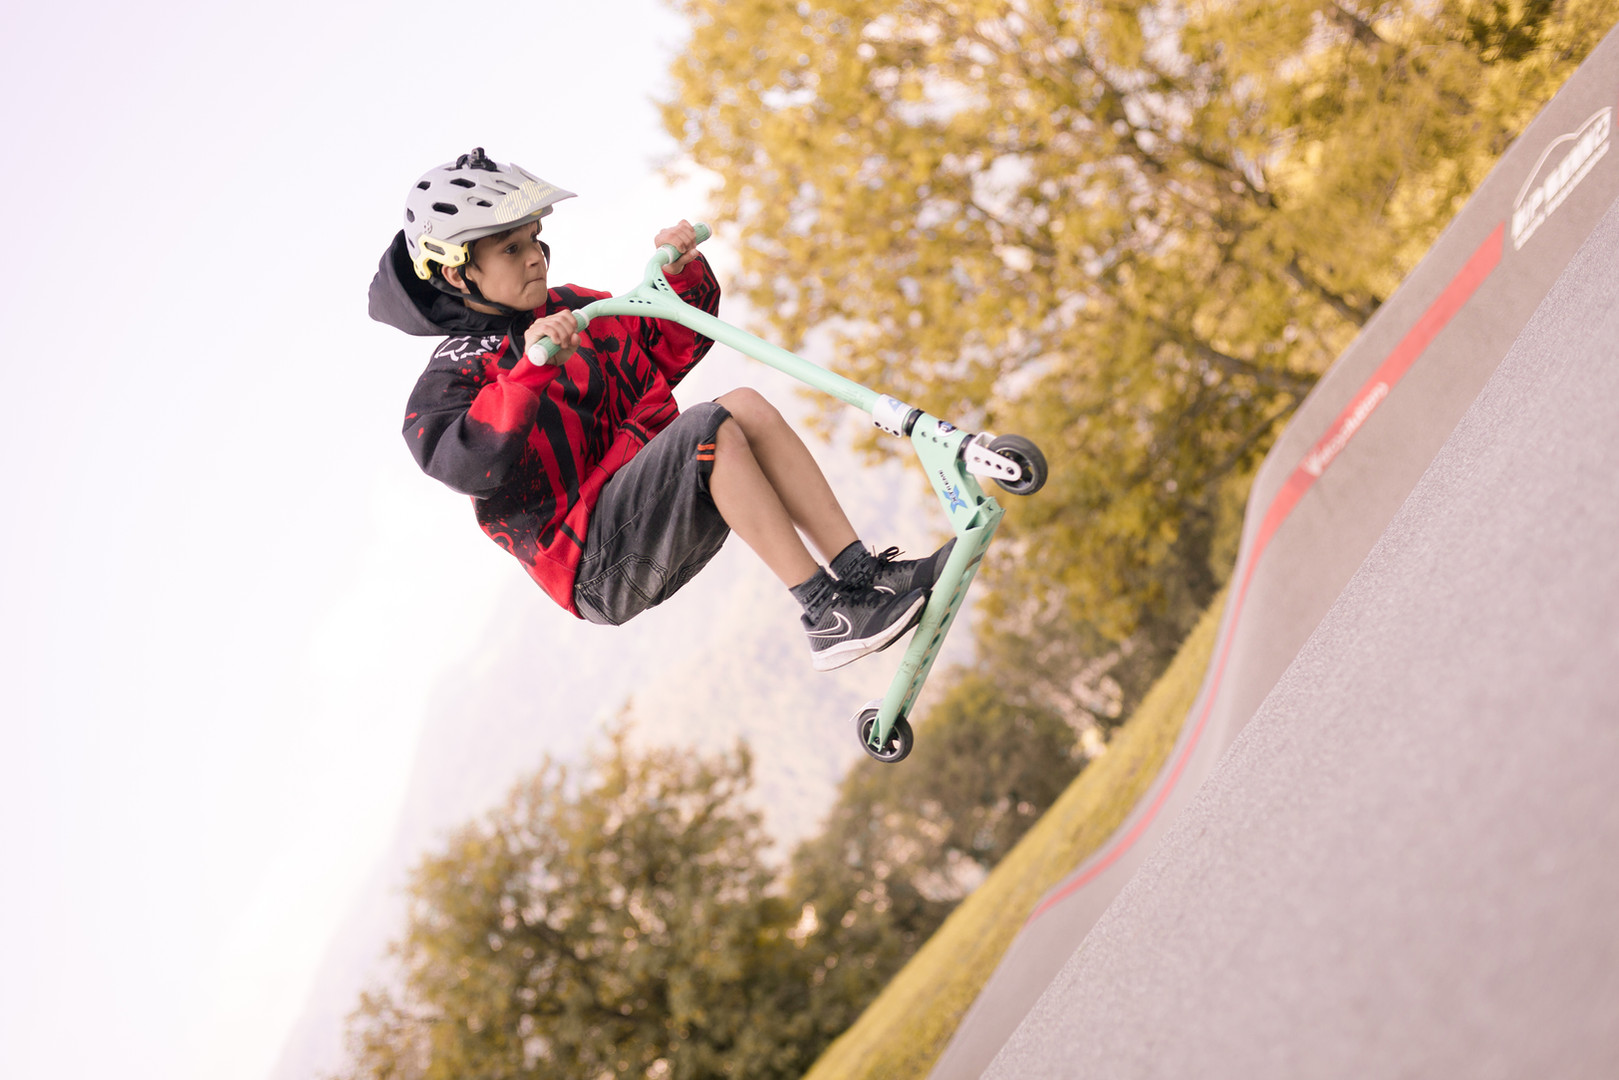 Pumptrack120920-006.jpg